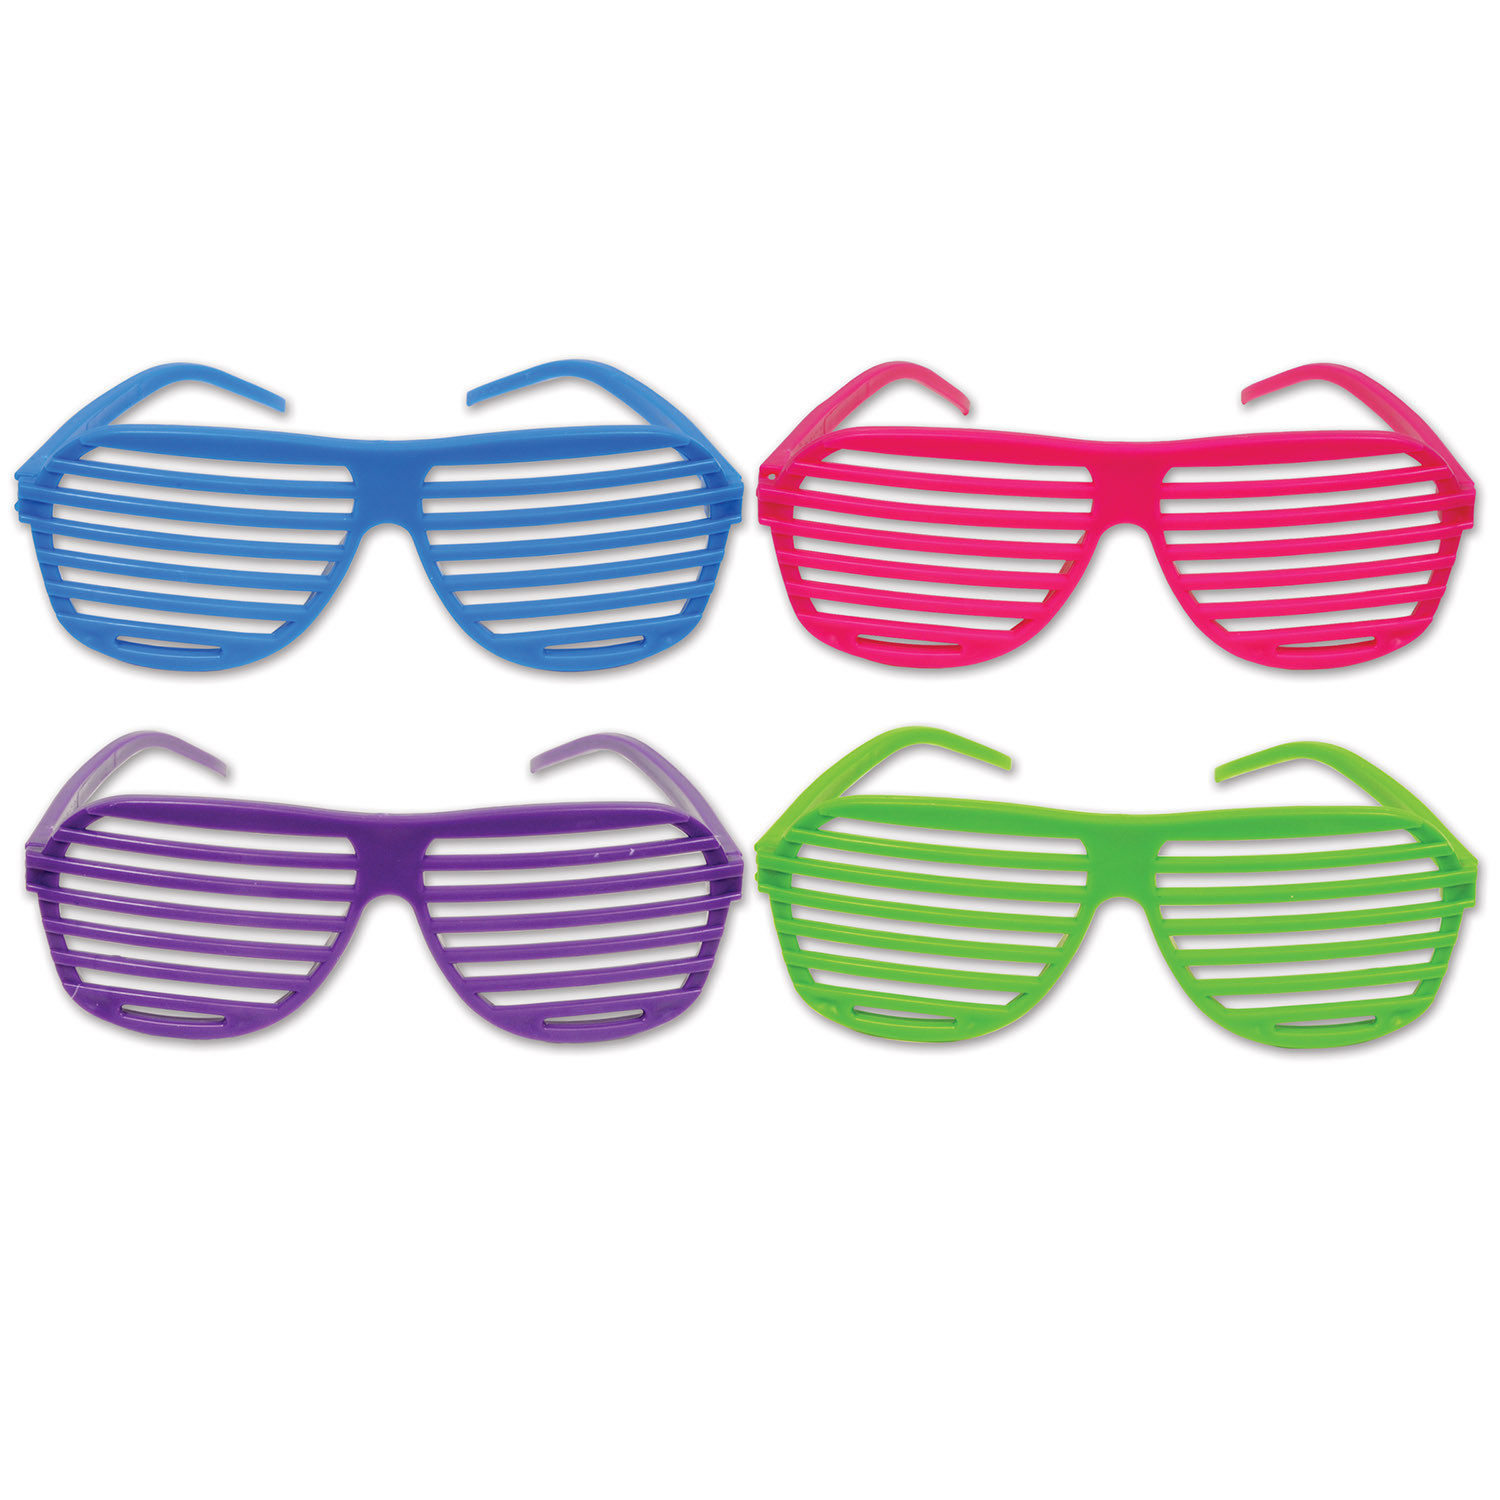 Shutter Shades (Pack of 48) eyeglasses, shutter shades, sunglasses, eyes, summer